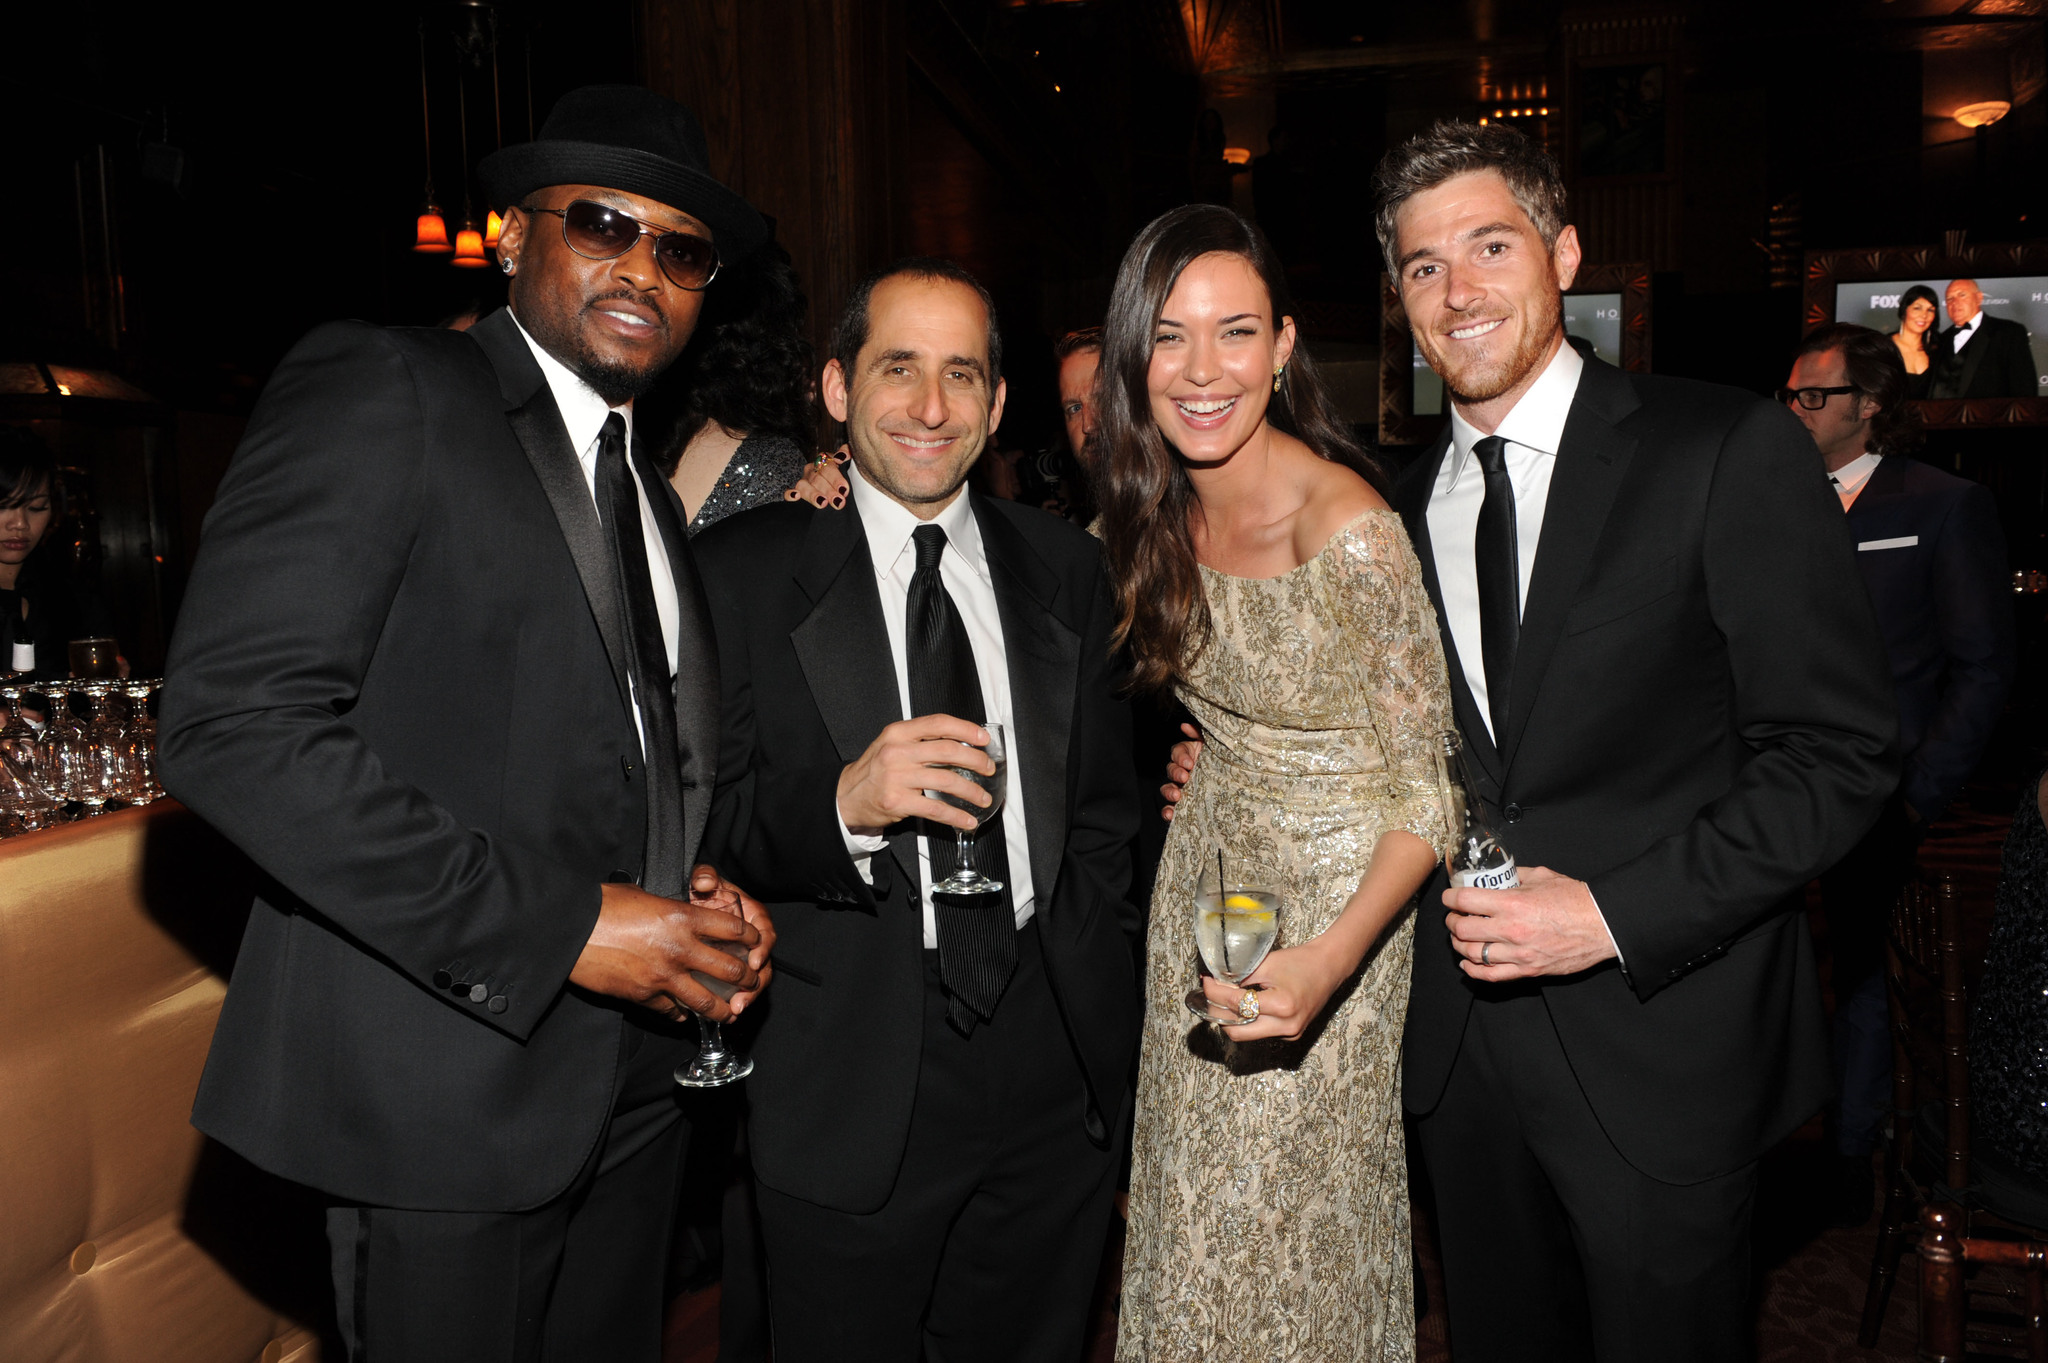 House-M-D-Series-Wrap-Party-April-20-2012-house-md-30564366-2048-1363.jpg